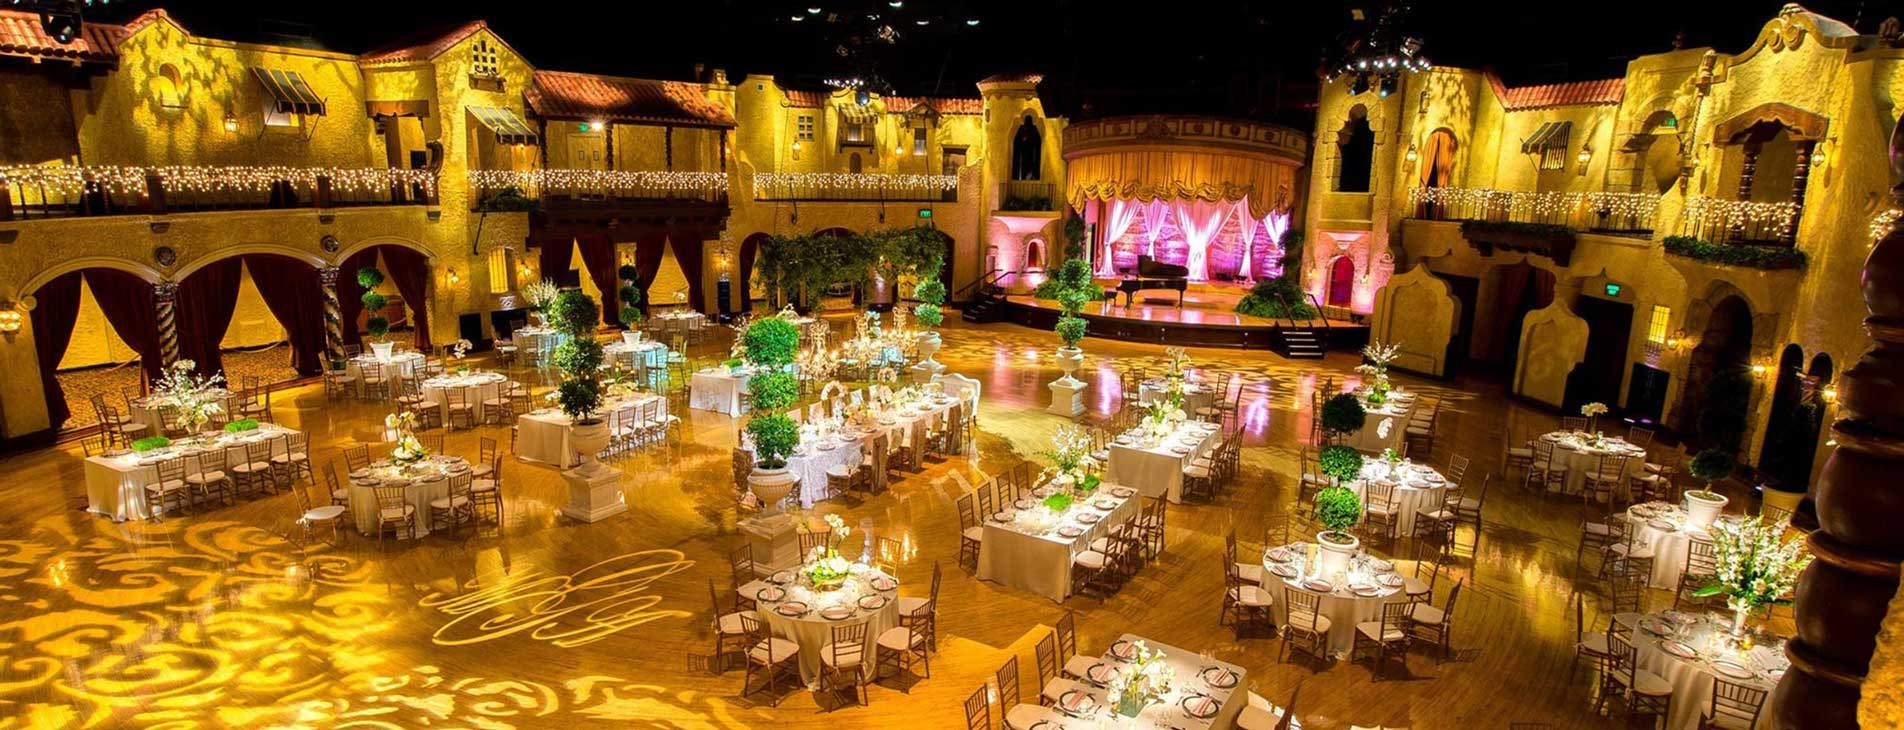 Indiana Roof Ballroom Venue ready for a Wedding Event in Indianapolis by Crystal Catering